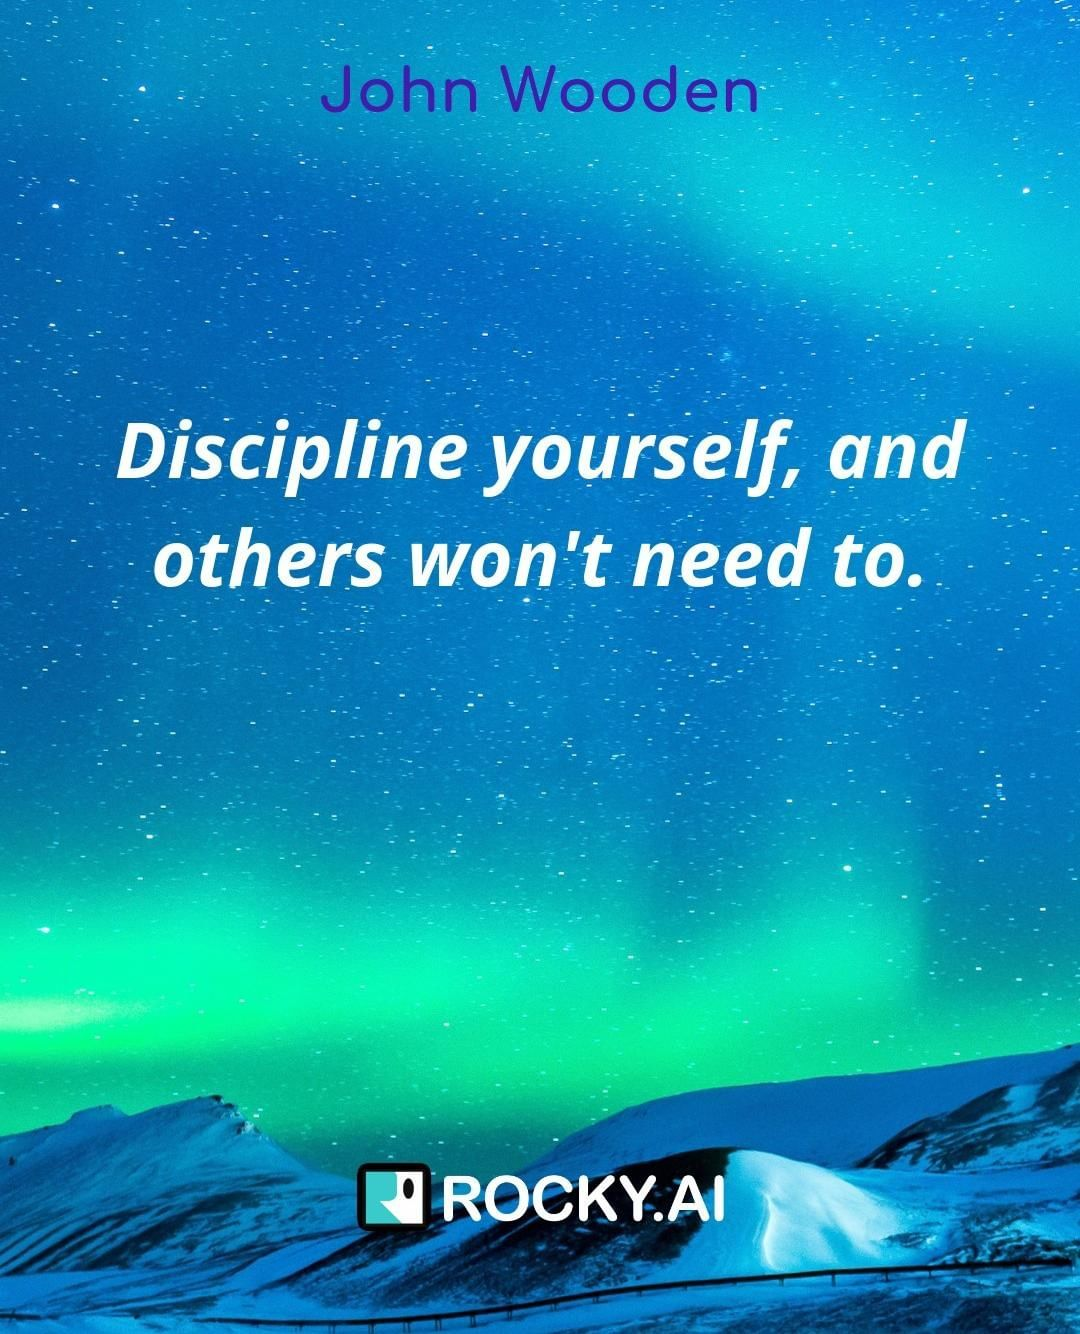 "What are your routines to be a disciplined leader? ""Discipline yourself, and others won't need to."" #focus #leadership #entrepreneur #business #success #inspiration #work #entrepreneurlife #entrepreneurship #businessowner #entrepreneurquotes #entrepreneurlifestyle #mindset #startuplife #goals #quoteoftheday #tech #startups #grind #leadershipdevelopment #personalgrowth #leadershipcoach #mindsetiseverything #conciousculture #alwayslearning #selfdevelopment #leadbyexample #businesscoach #femaleentrepreneur #lifecoach"